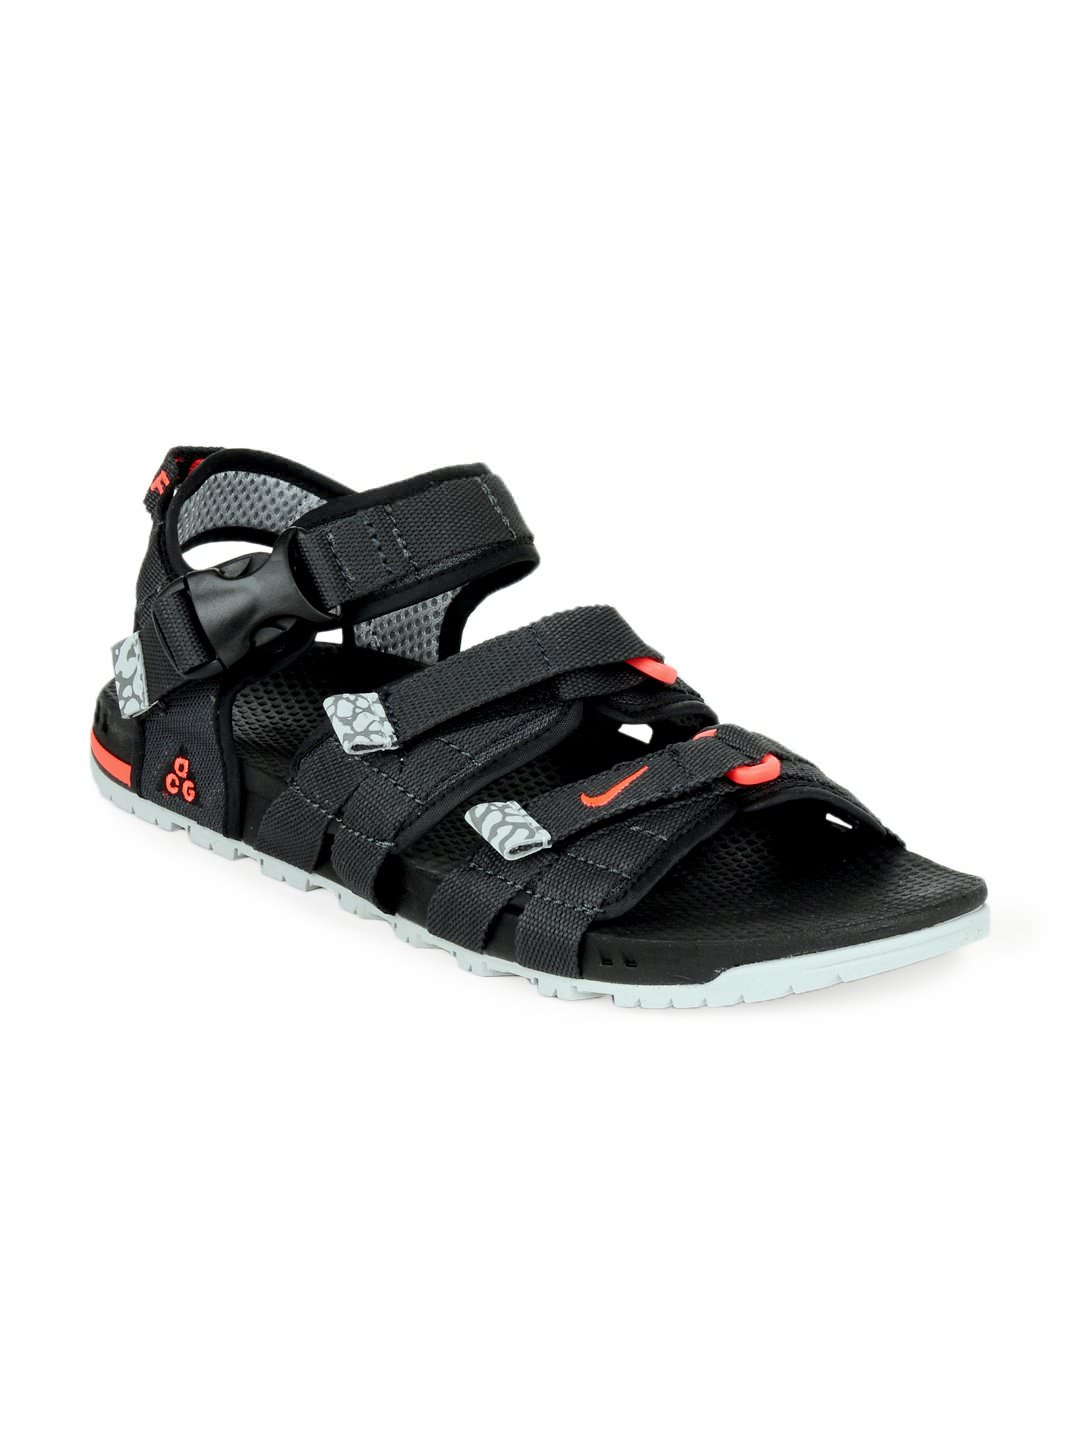 Nike Air Air Sandals Men For Sandals Nike ZTwOulPikX